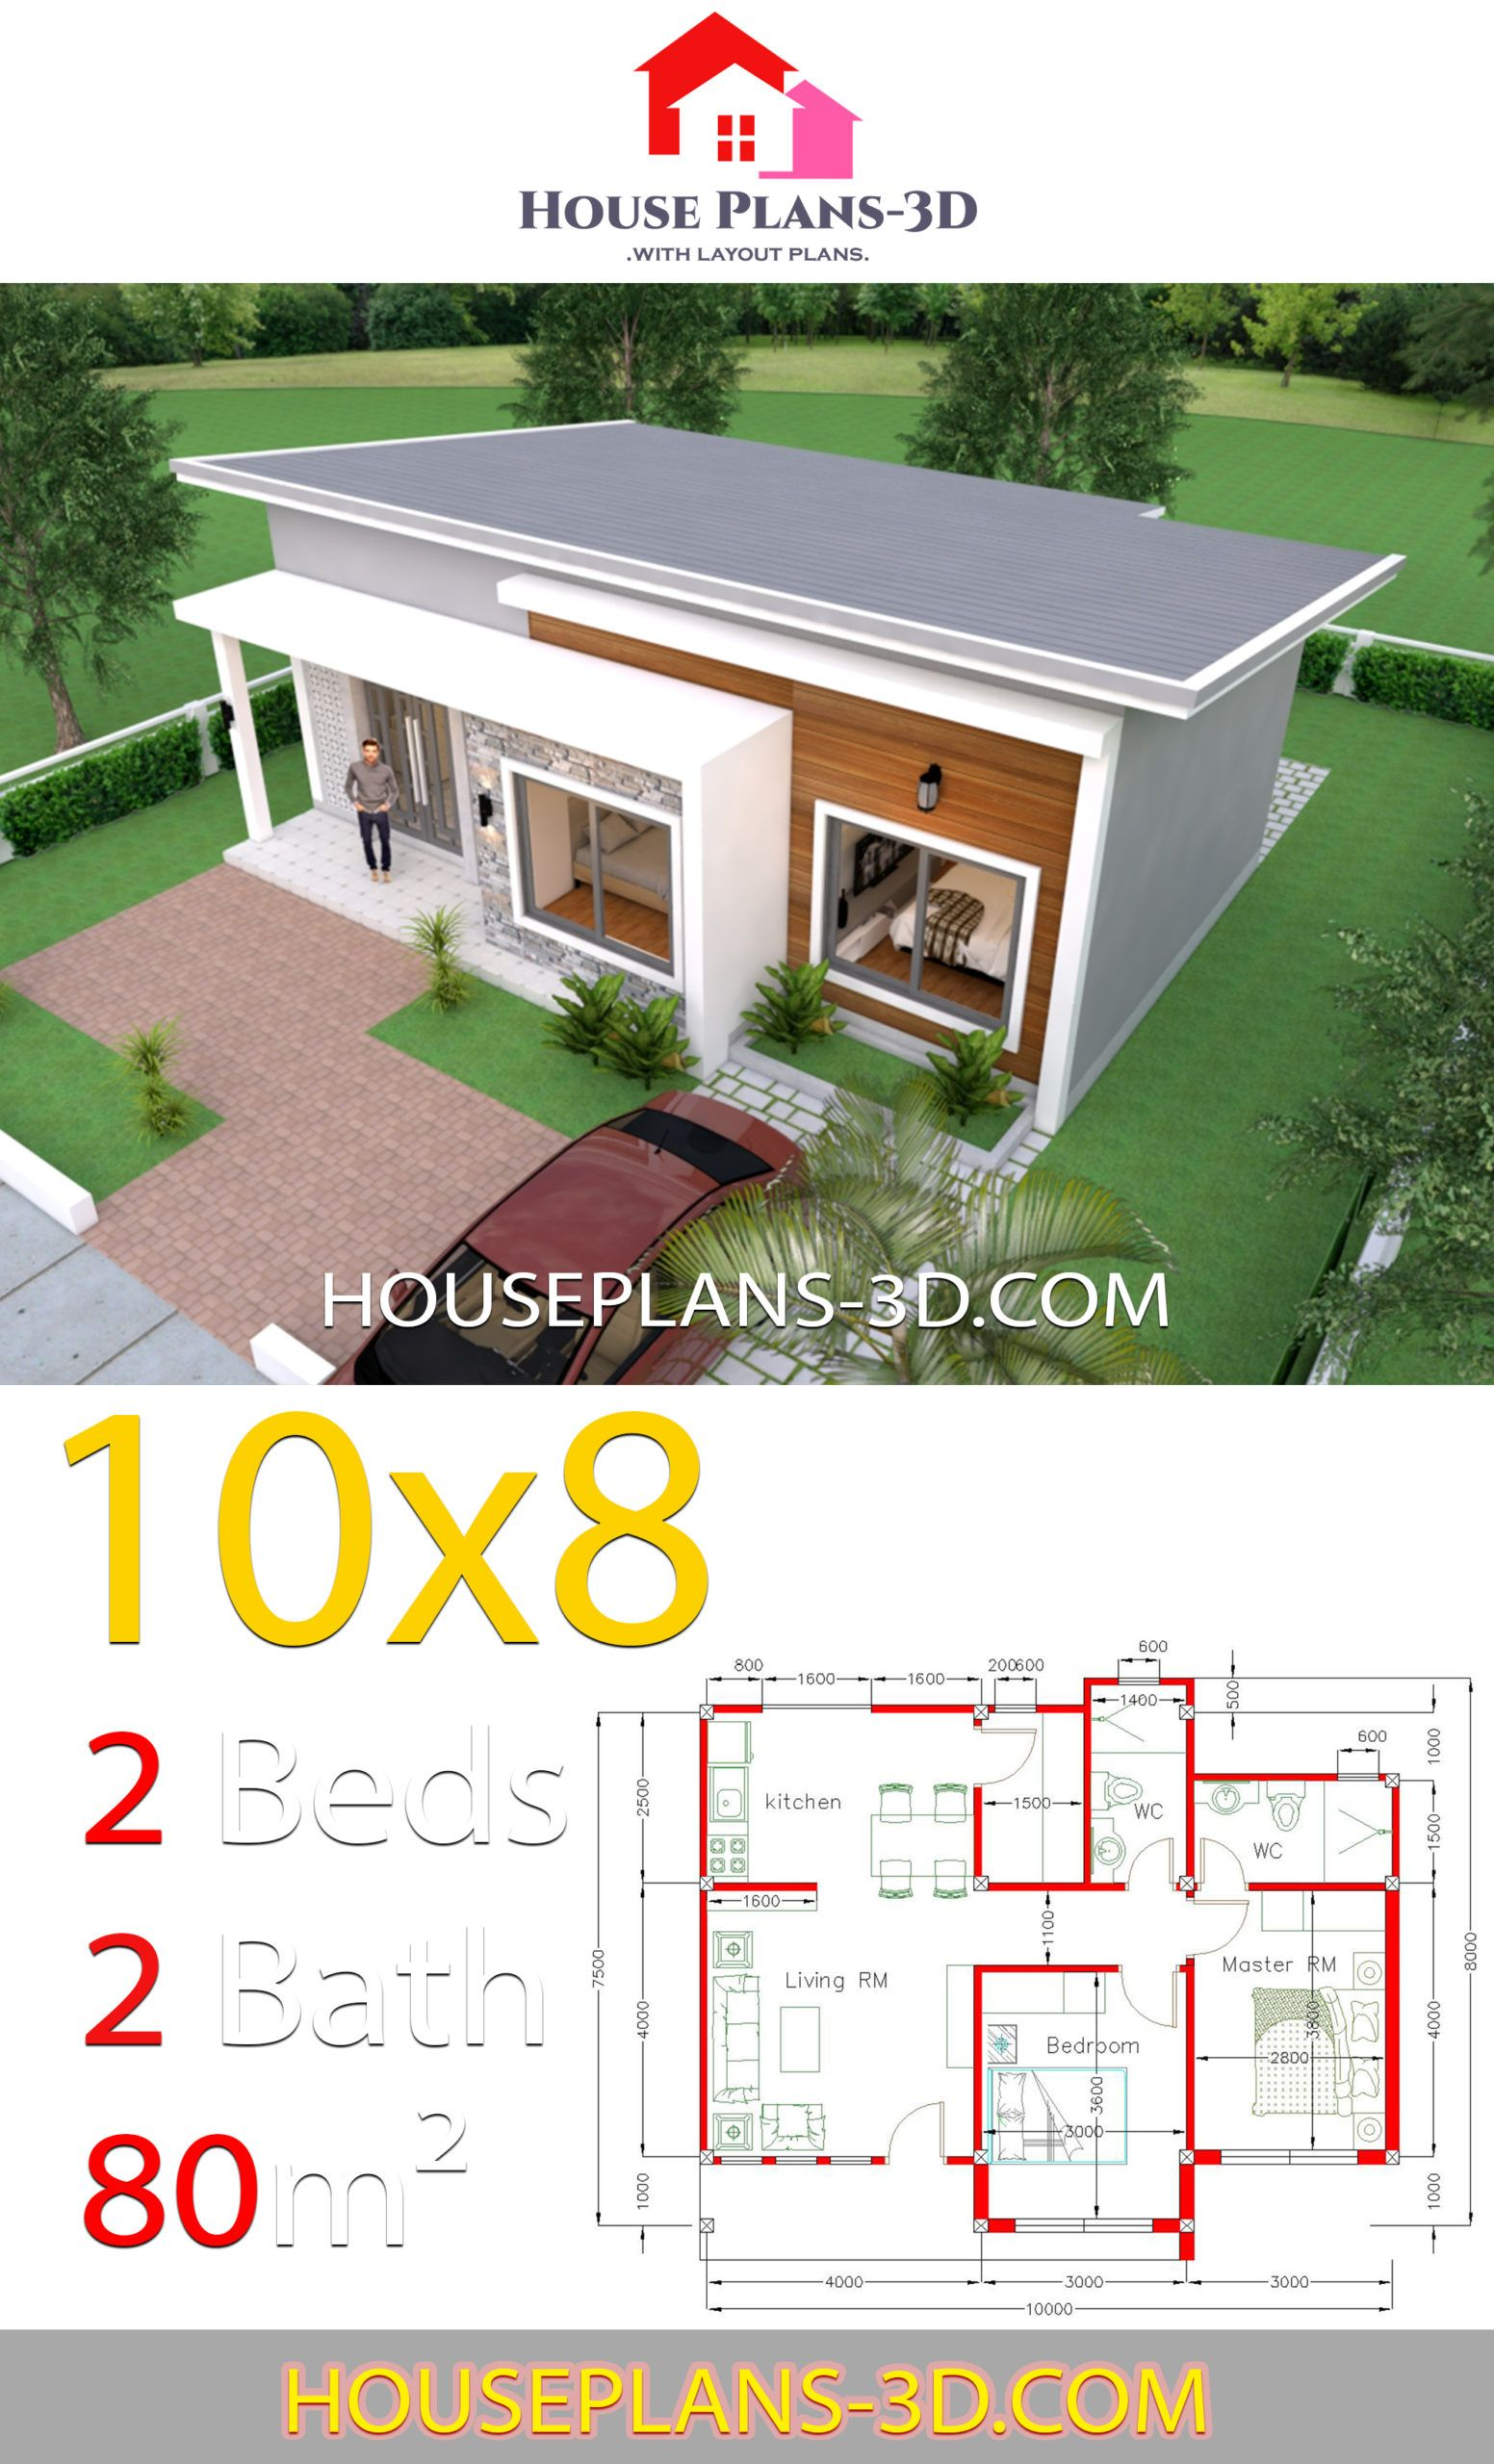 House Plans 10x8 With 2 Bedrooms Shed Roof House Plans 3d House Plans House Construction Plan House Roof